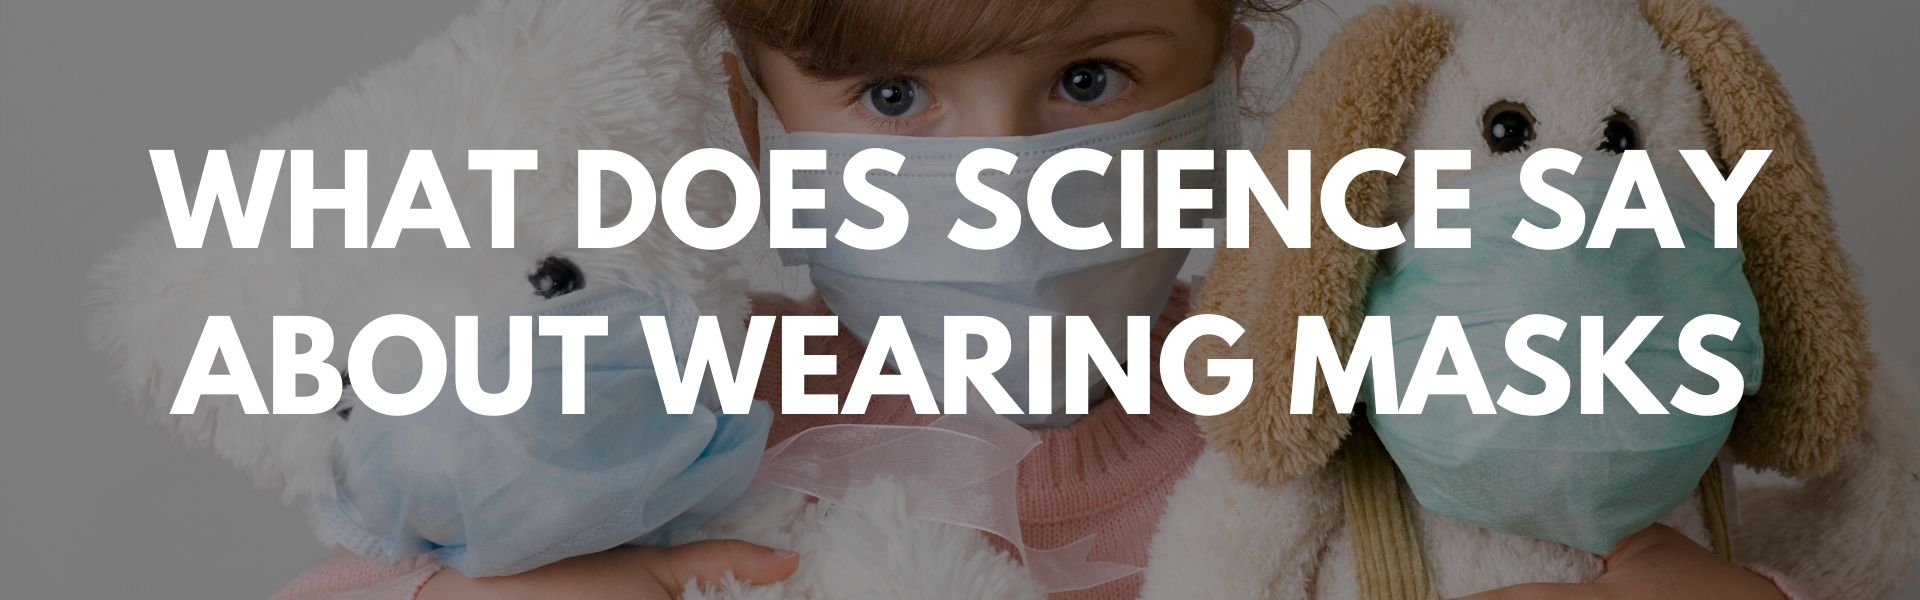 WHAT DOES SCIENCE SAY ABOUT WEARING MASKS